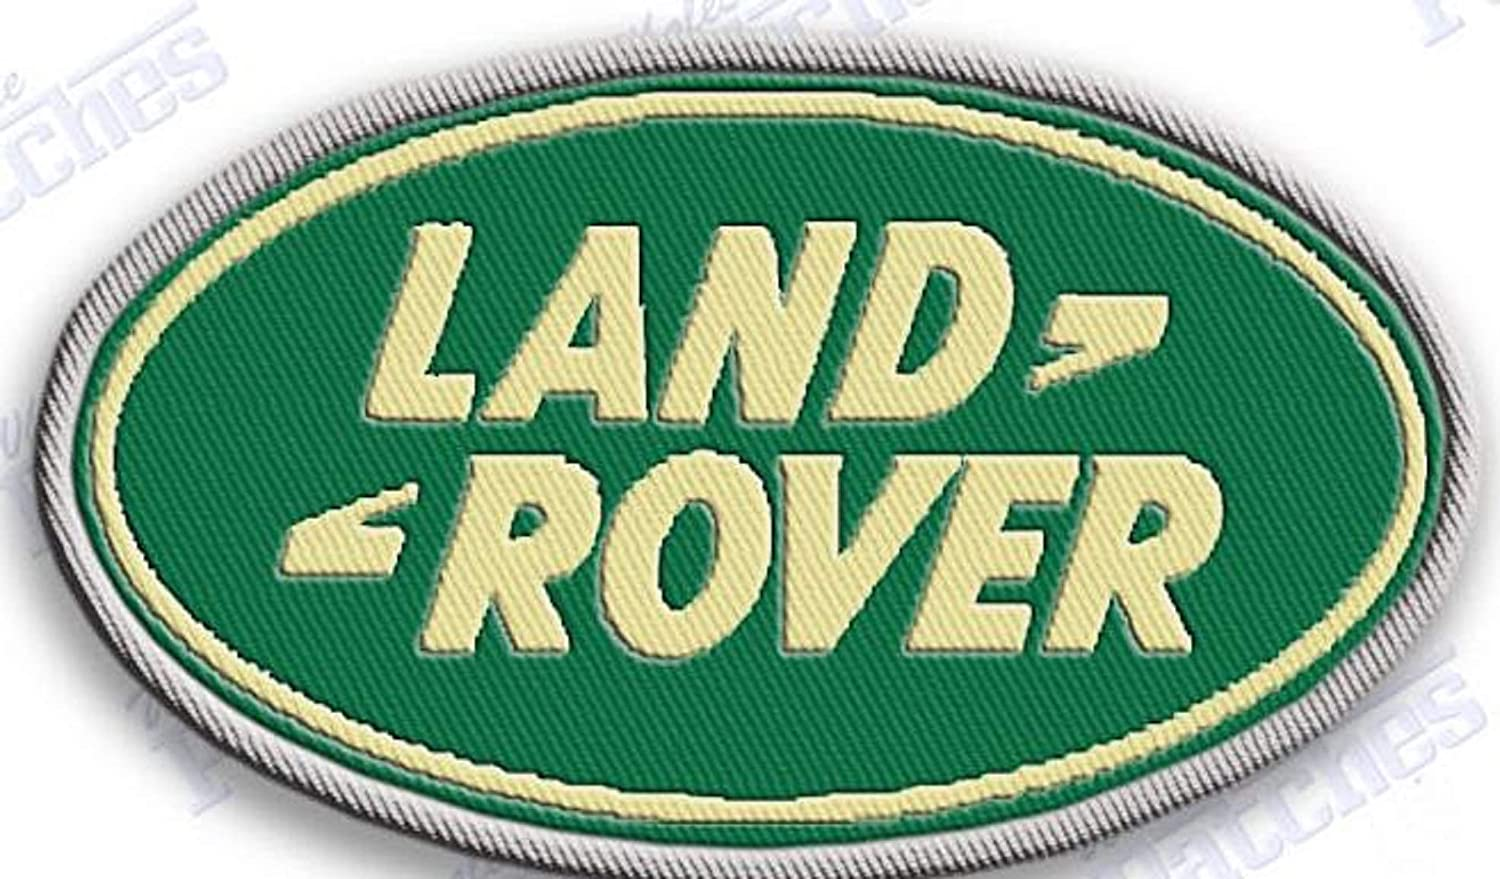 SIZE 2.3 X 1.7 /… EMBROIDERY 100/% CARS AUTOS AUTOMOBILE RANGE RACING LAND ROVER IRON ON EMBROIDERED PATCH PATCHES /…